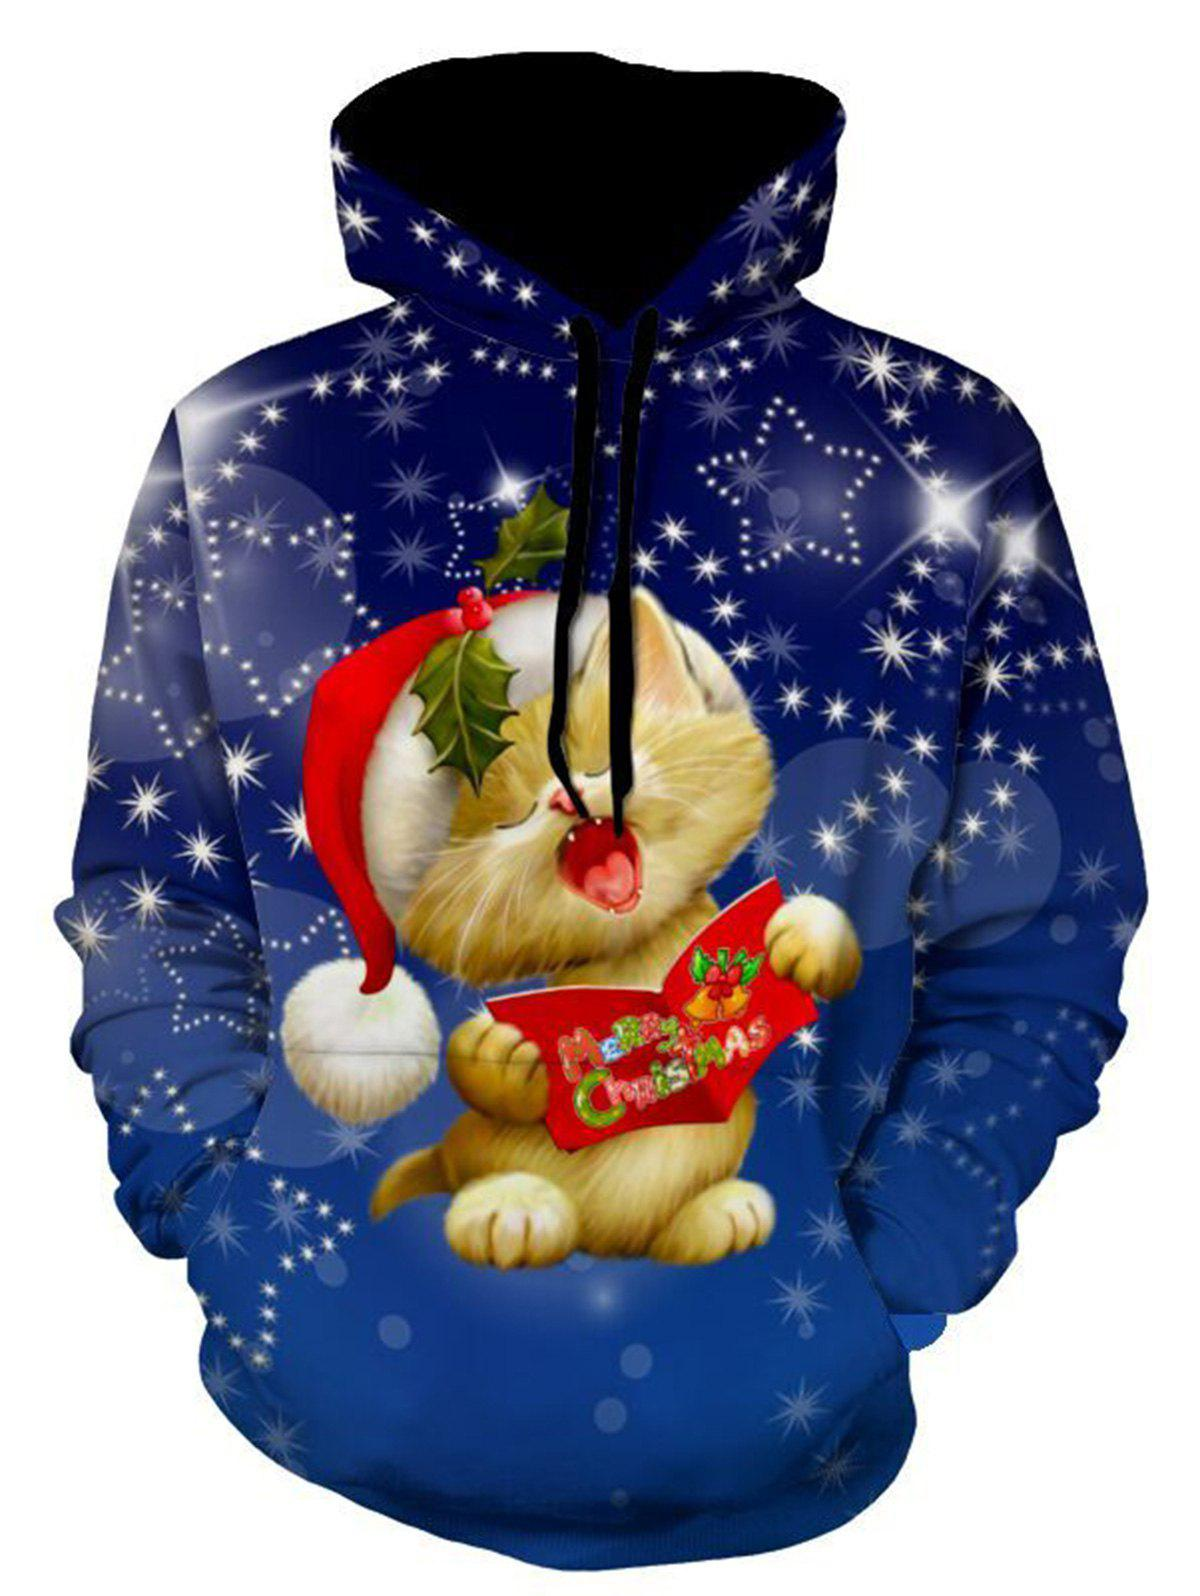 Christmas Cat Star Print Pullover HoodieMEN<br><br>Size: 3XL; Color: BLUE; Material: Polyester,Spandex; Clothes Type: Hoodie; Shirt Length: Regular; Sleeve Length: Full; Style: Fashion; Patterns: 3D,Animal,Print; Thickness: Regular; Occasion: Casual ,Daily Use,Going Out; Weight: 0.5400kg; Package Contents: 1 x Hoodie;